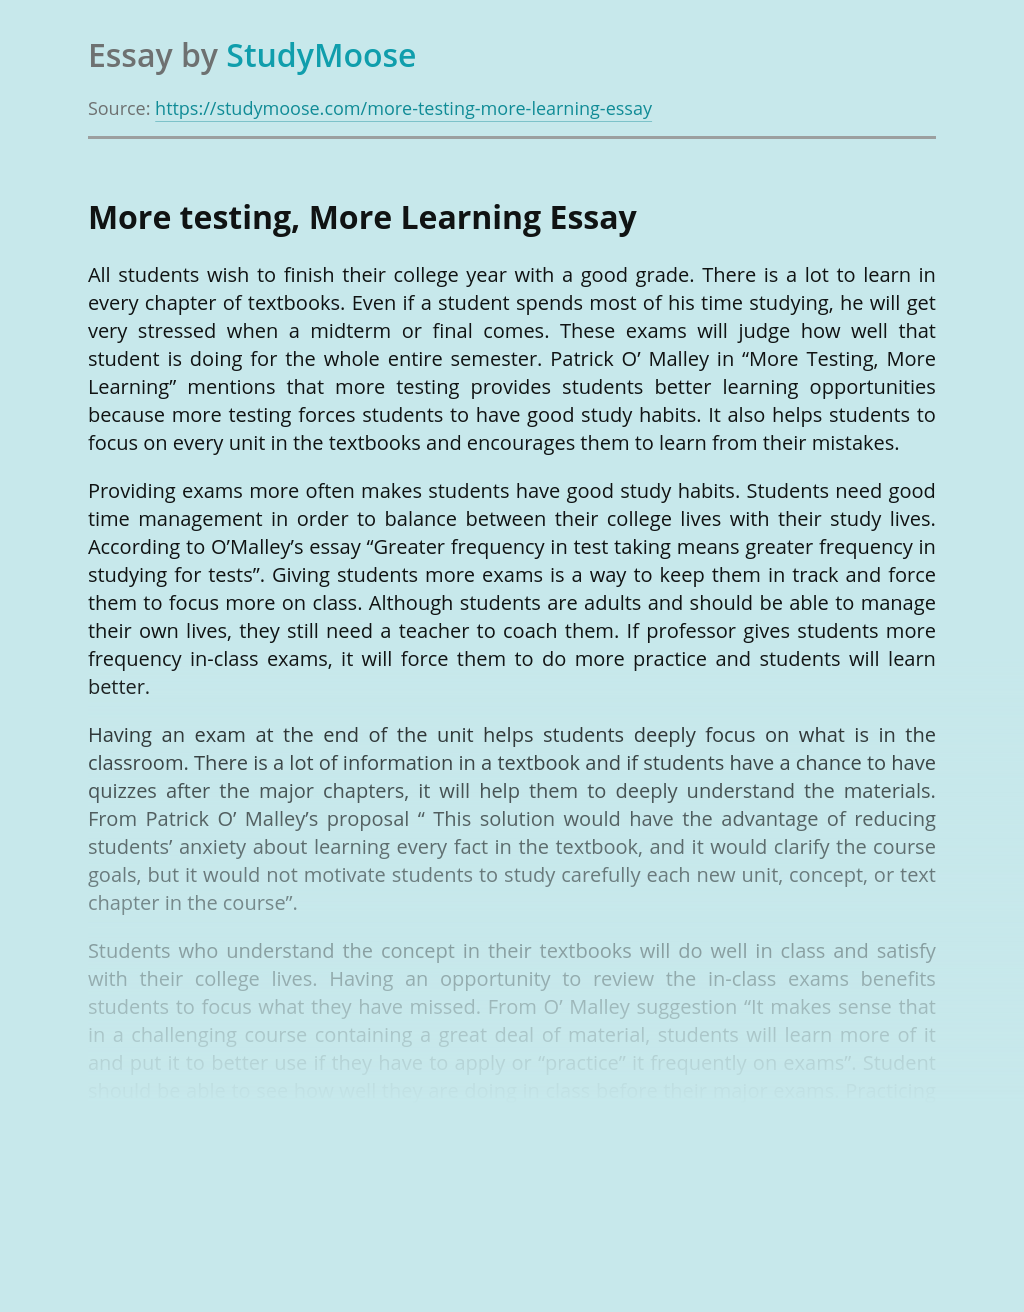 More testing, More Learning